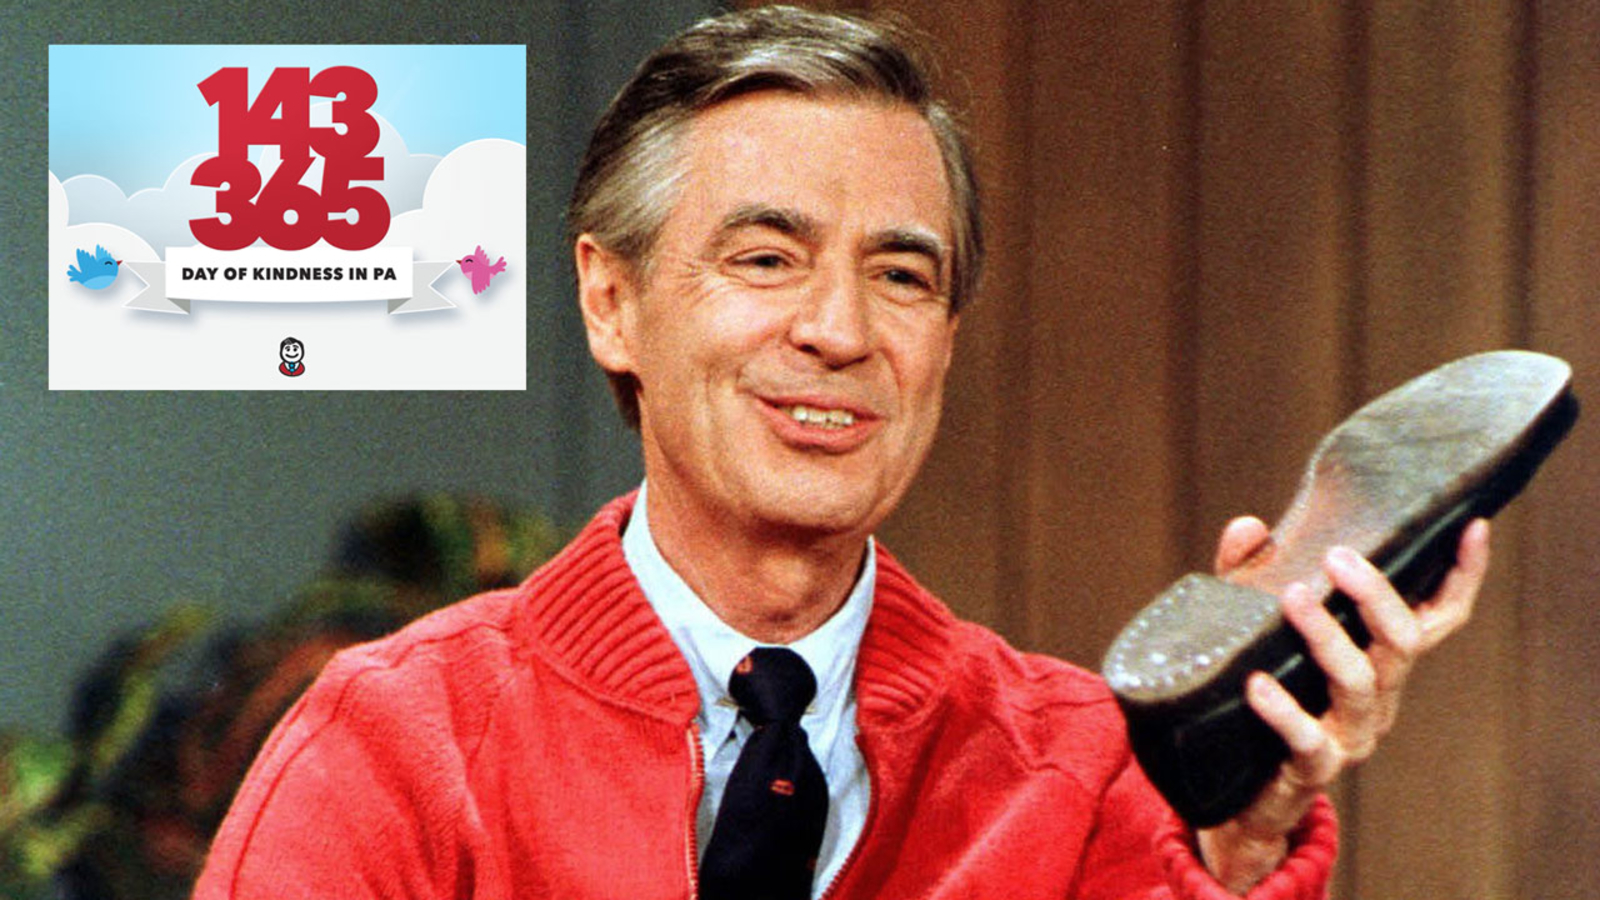 #143DayinPA: Day of Kindness in honor of Mister Rogers